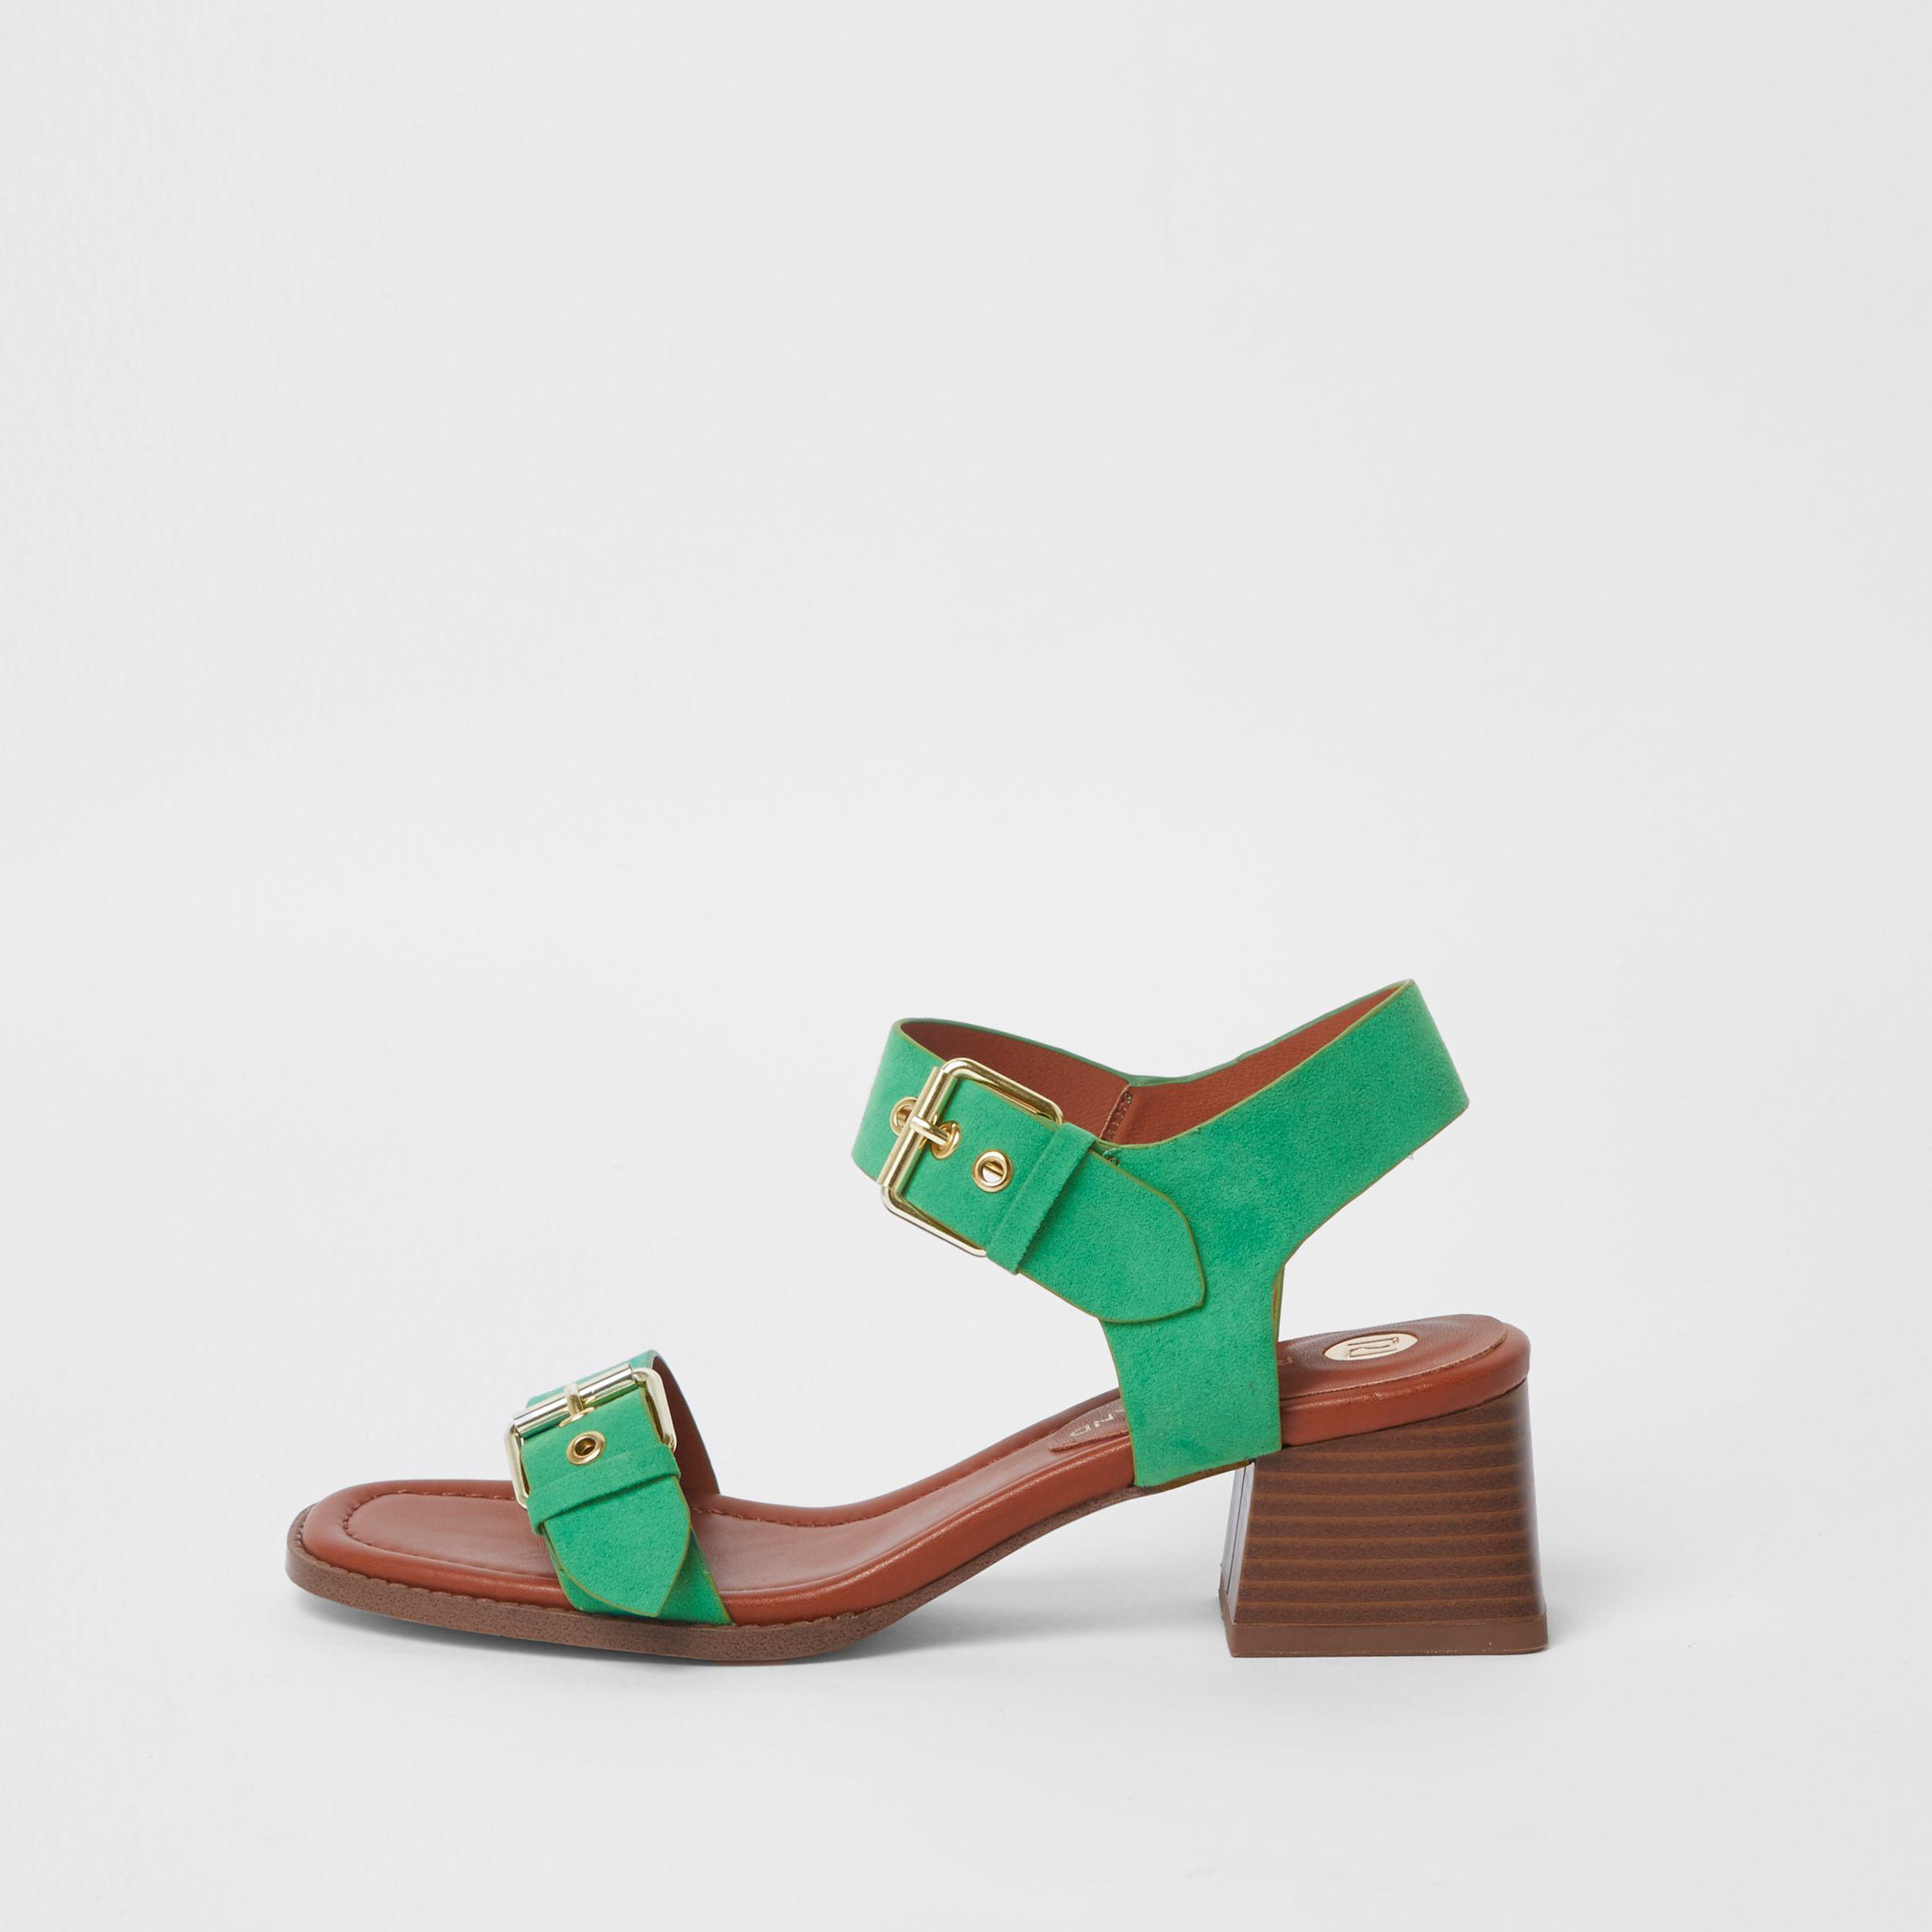 f0caf02432b Lyst - River Island Green Two Part Block Heel Sandals in Green